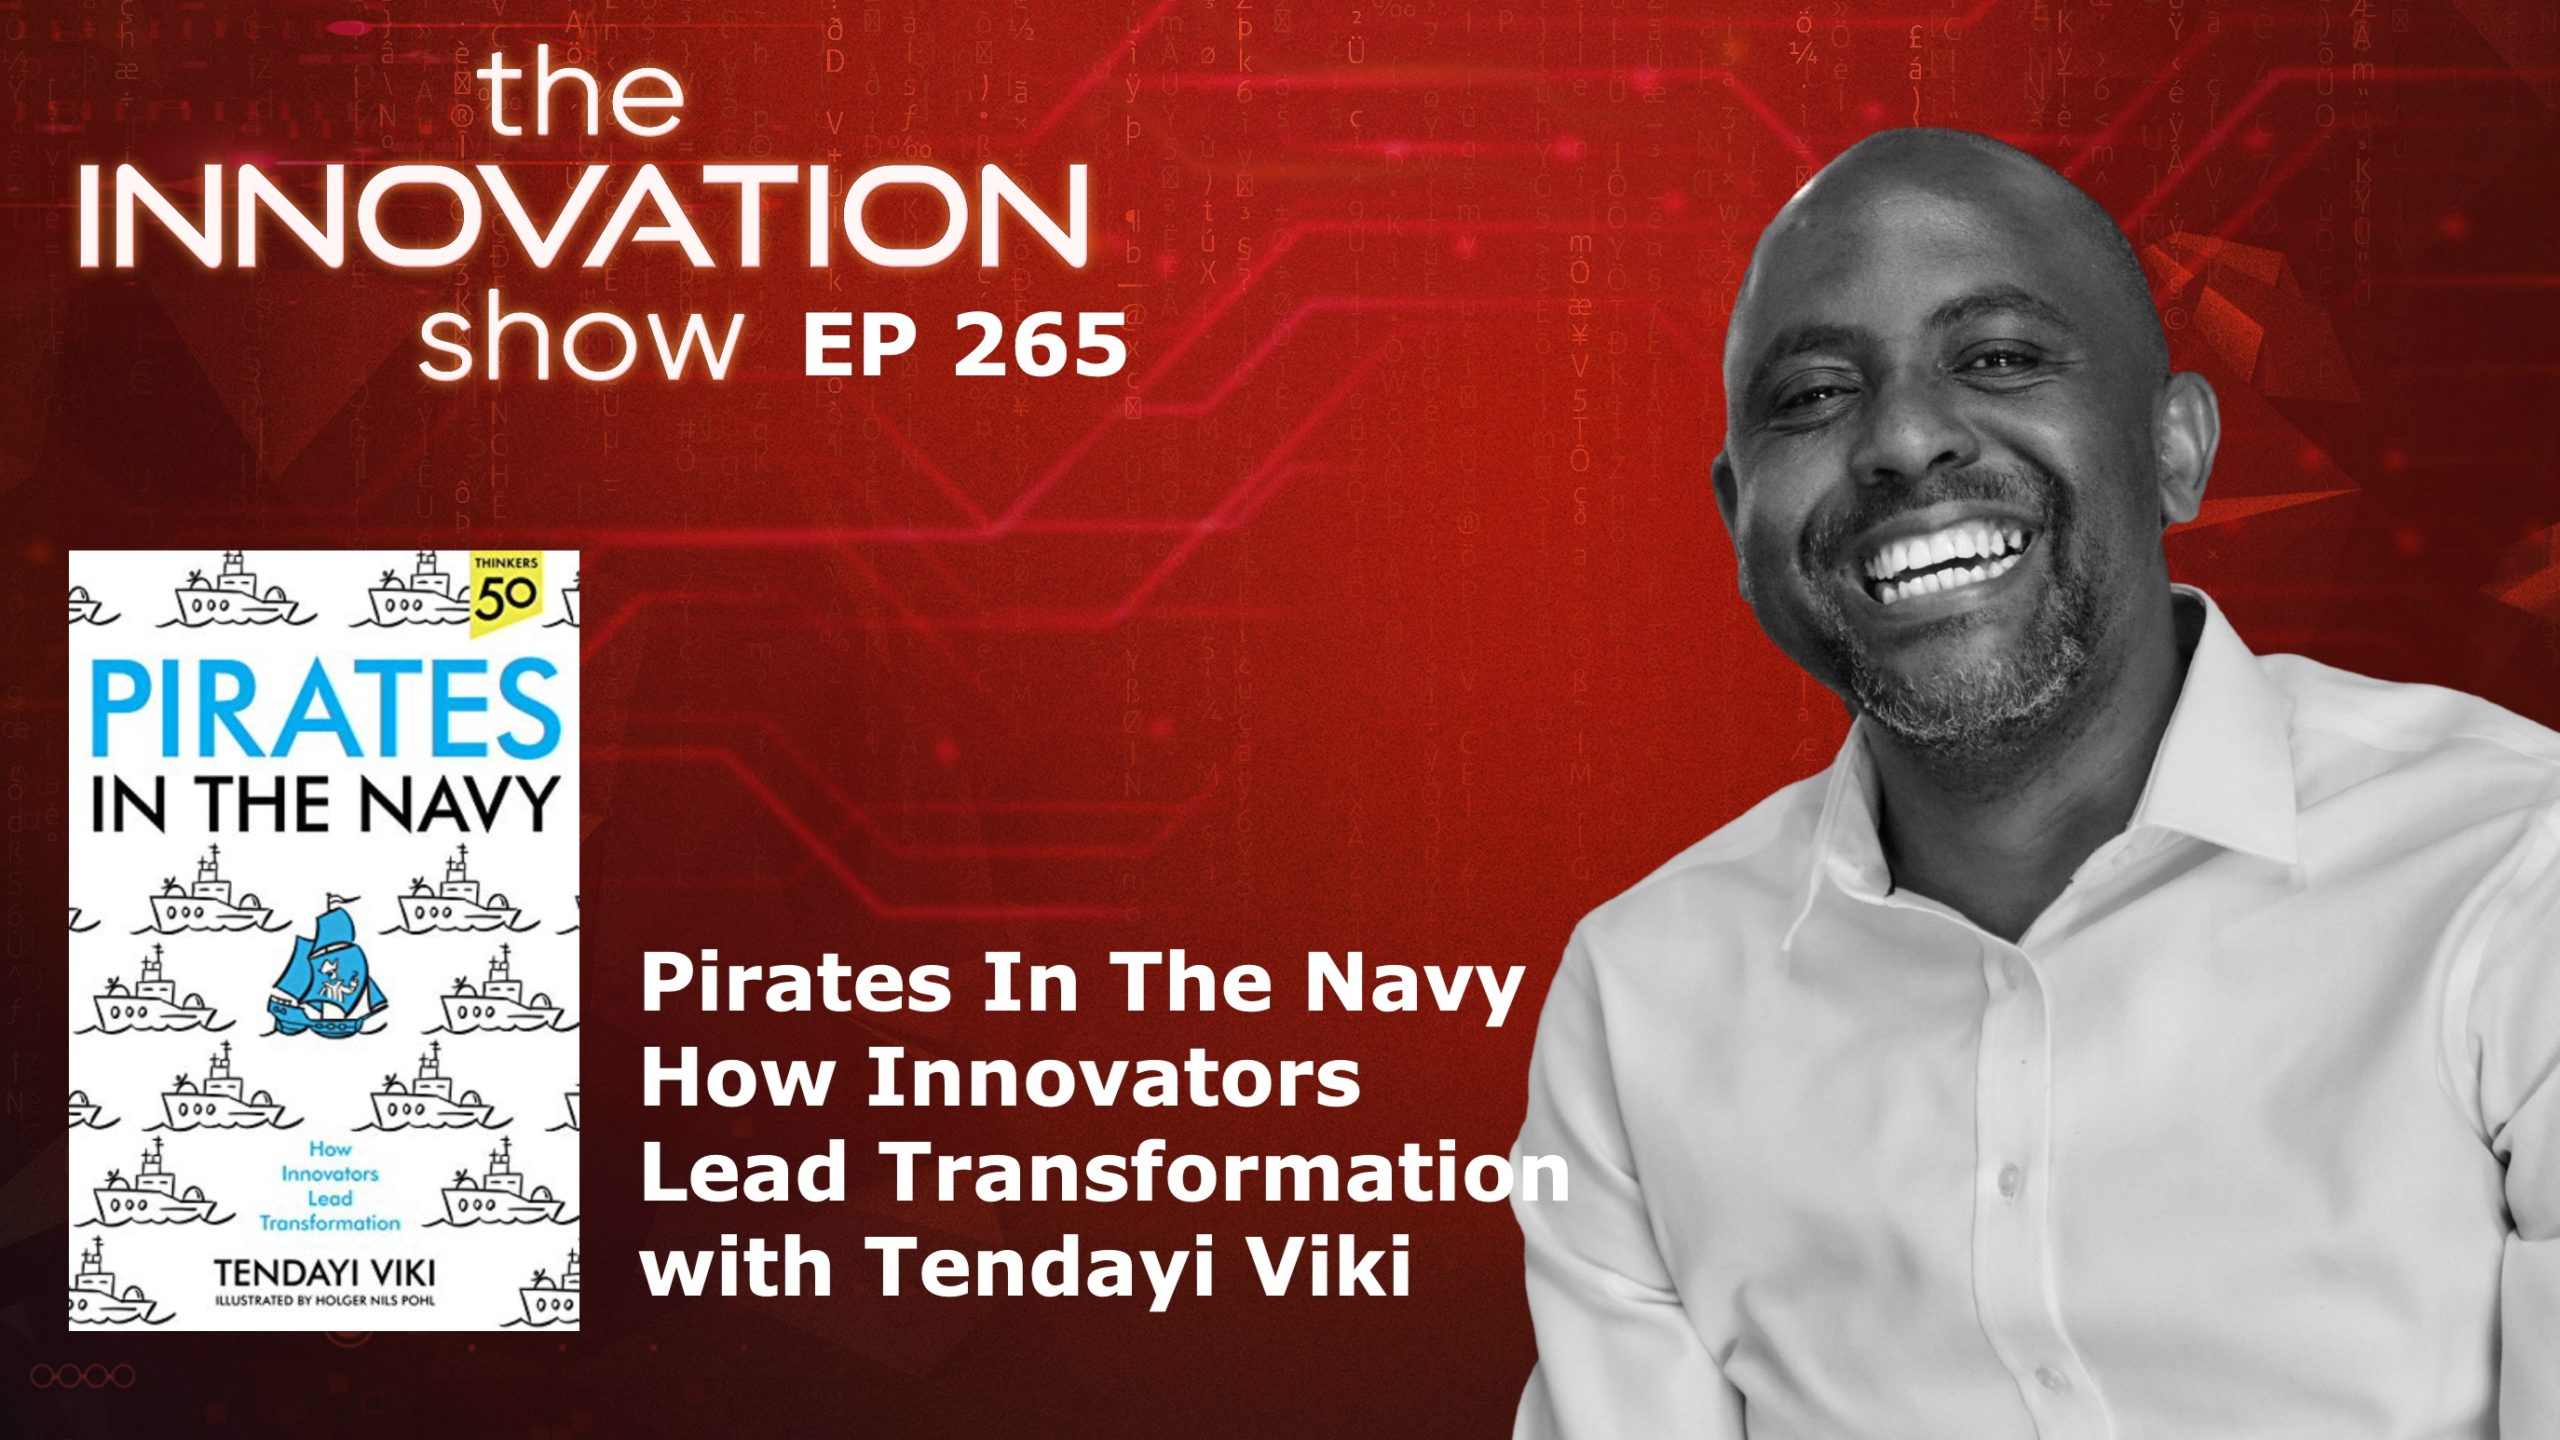 Tendayi Viki Innovation Show